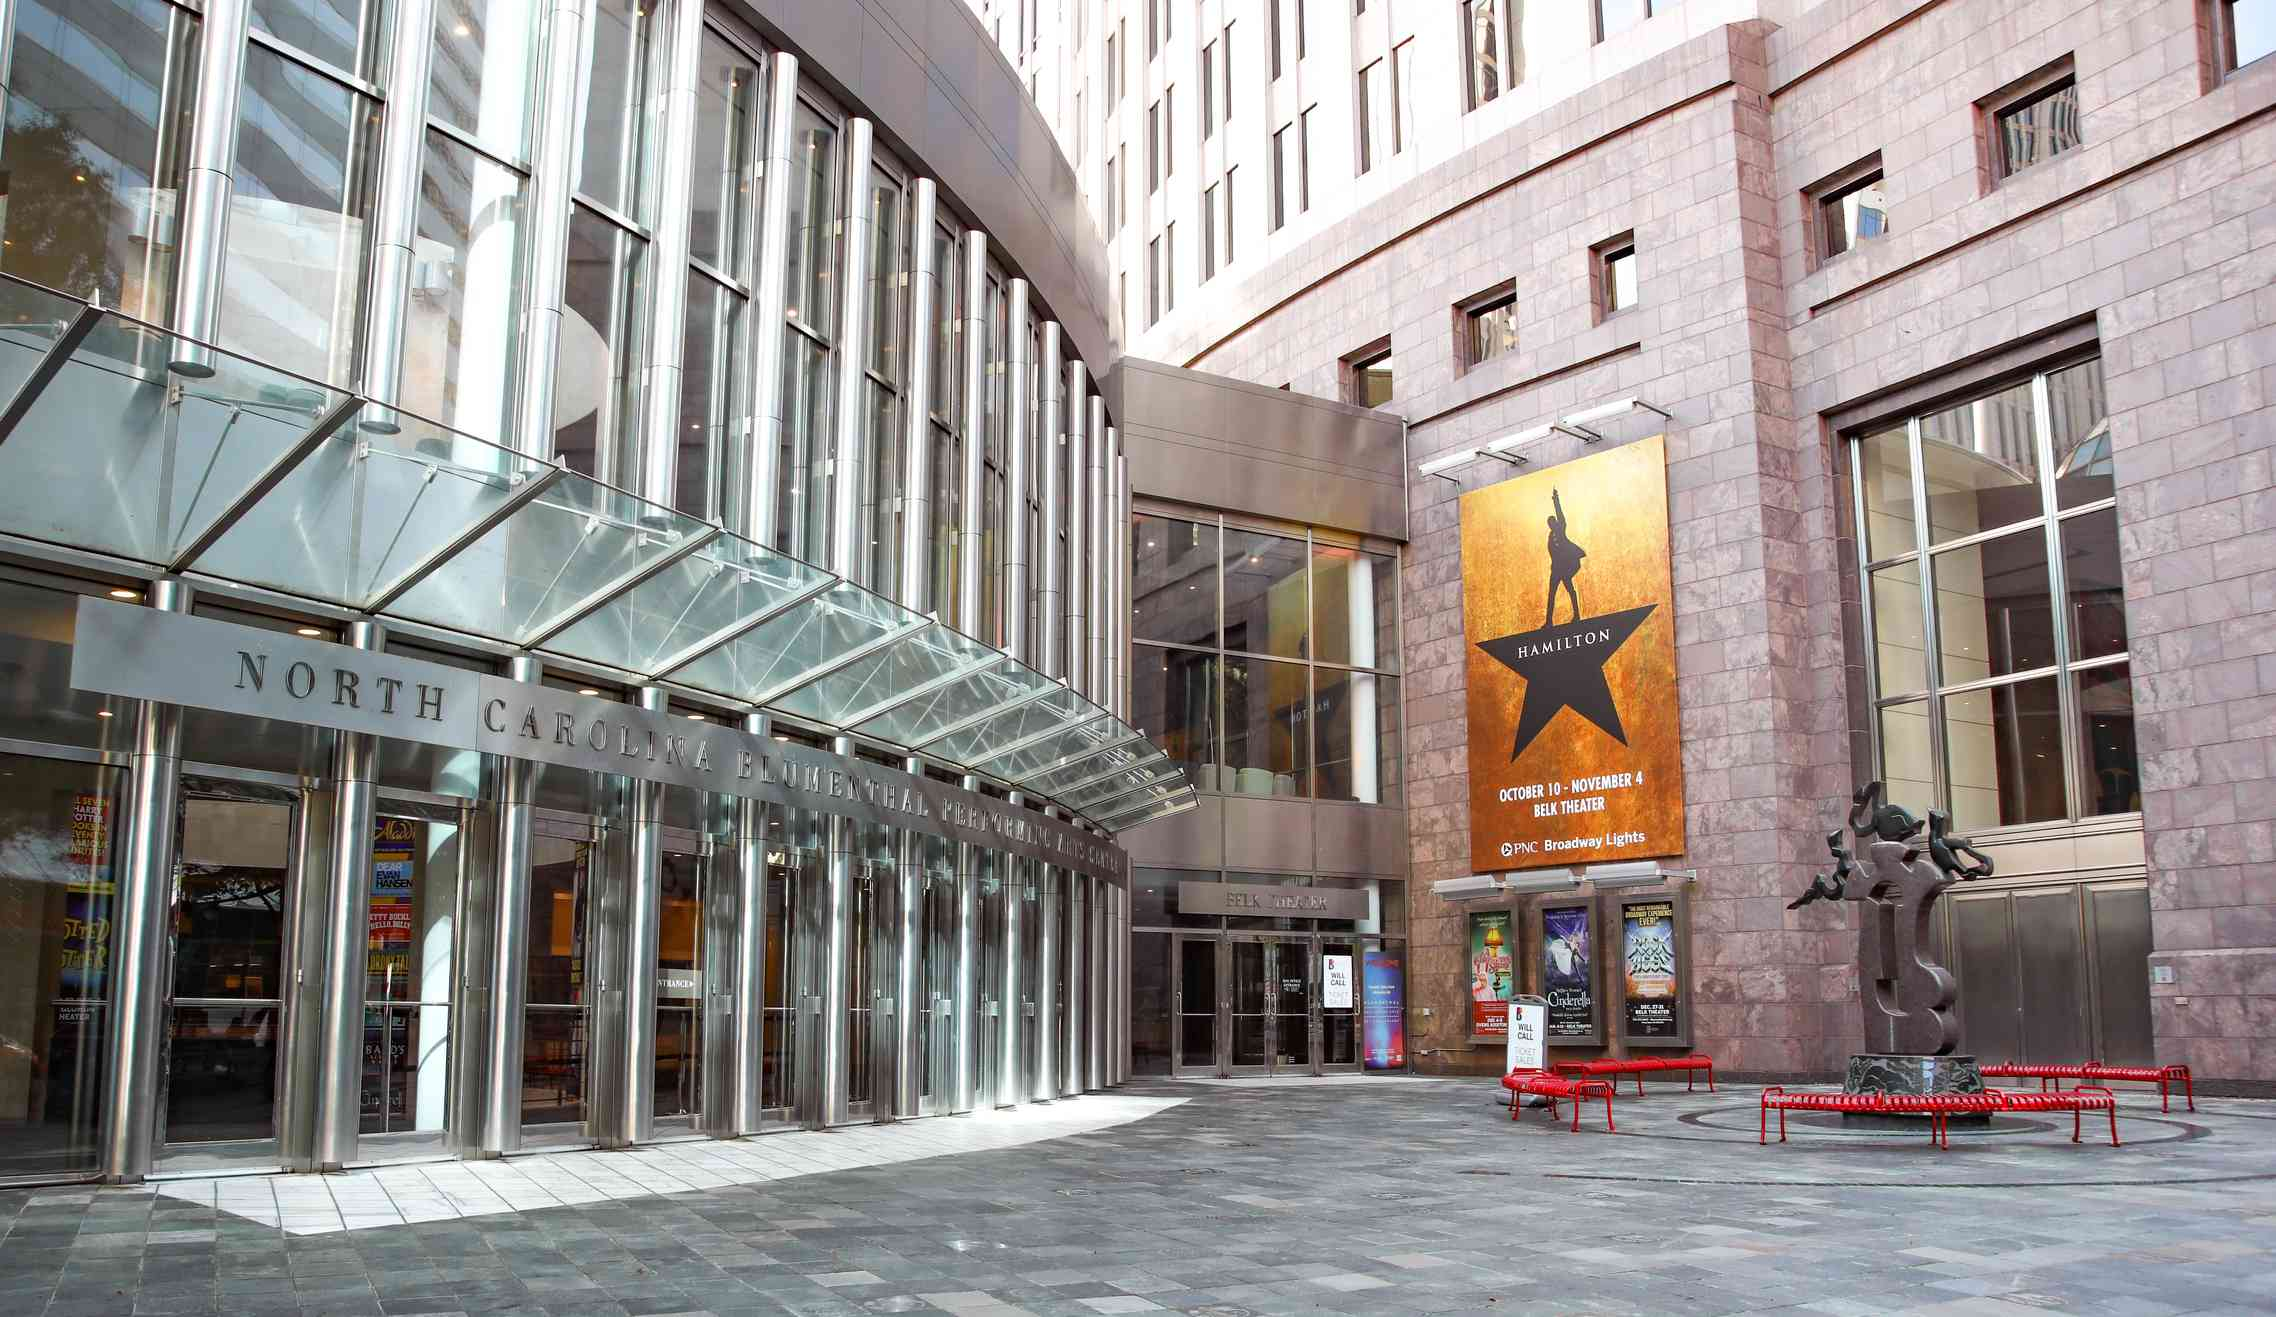 Blumenthal Center for Performing Arts